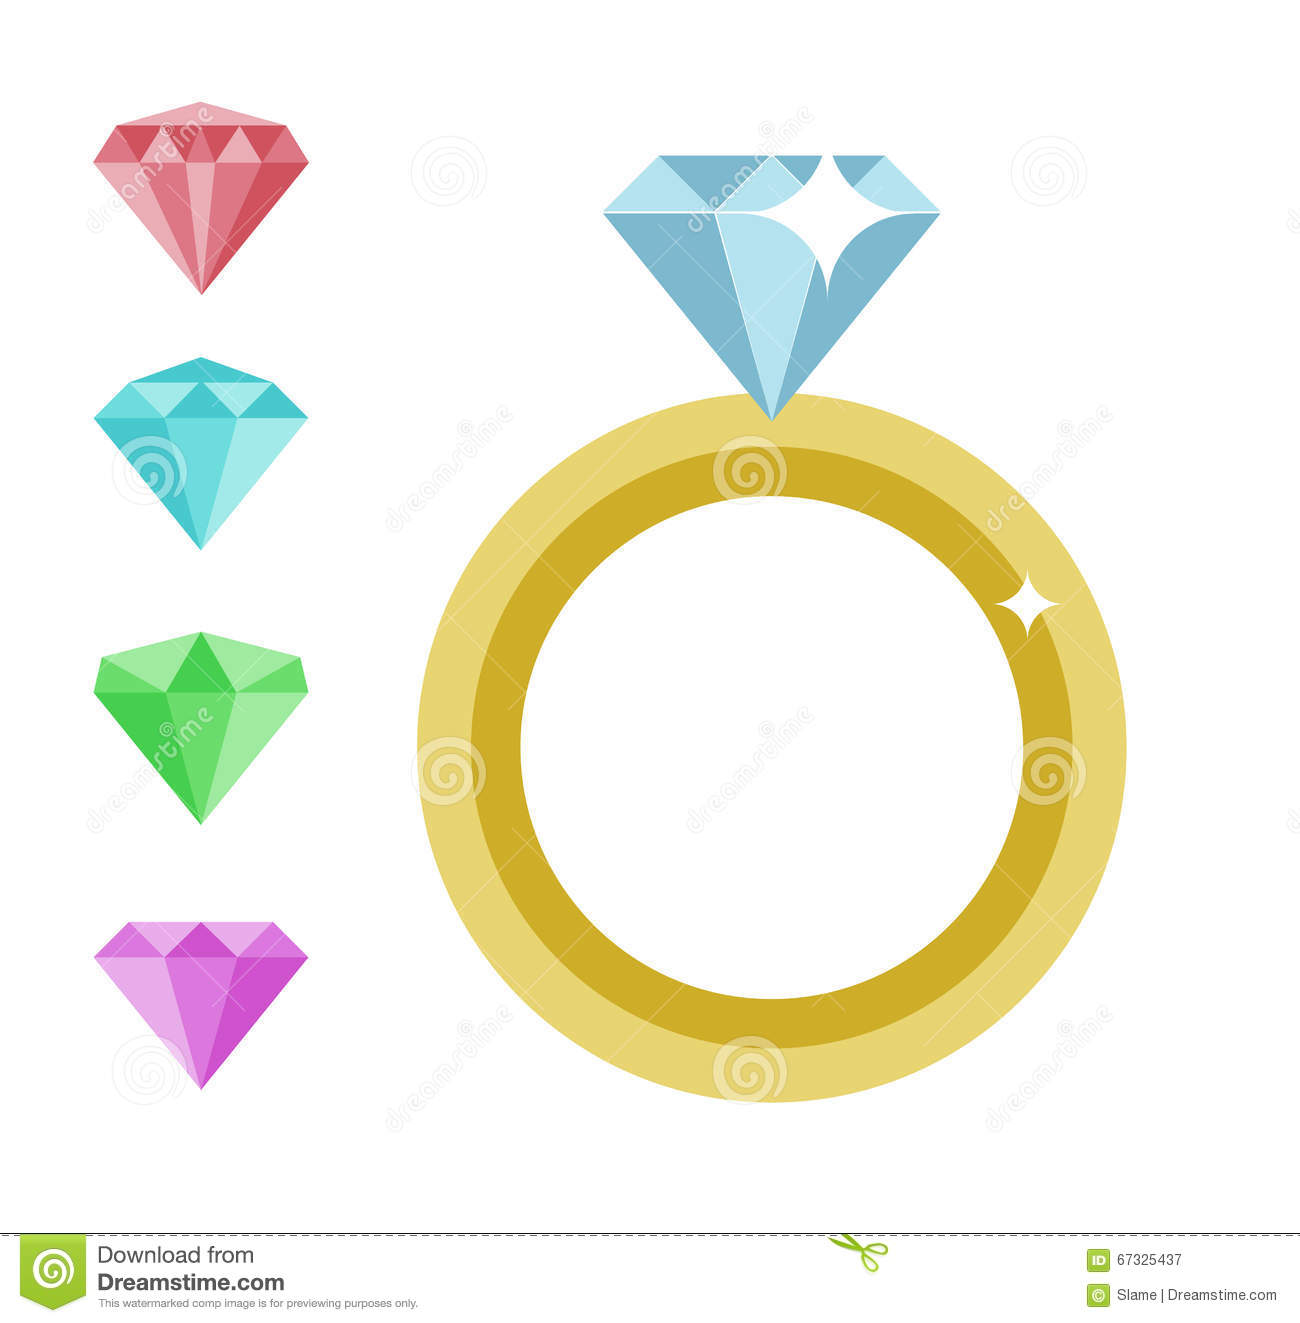 diamond ring vector icon - photo #49